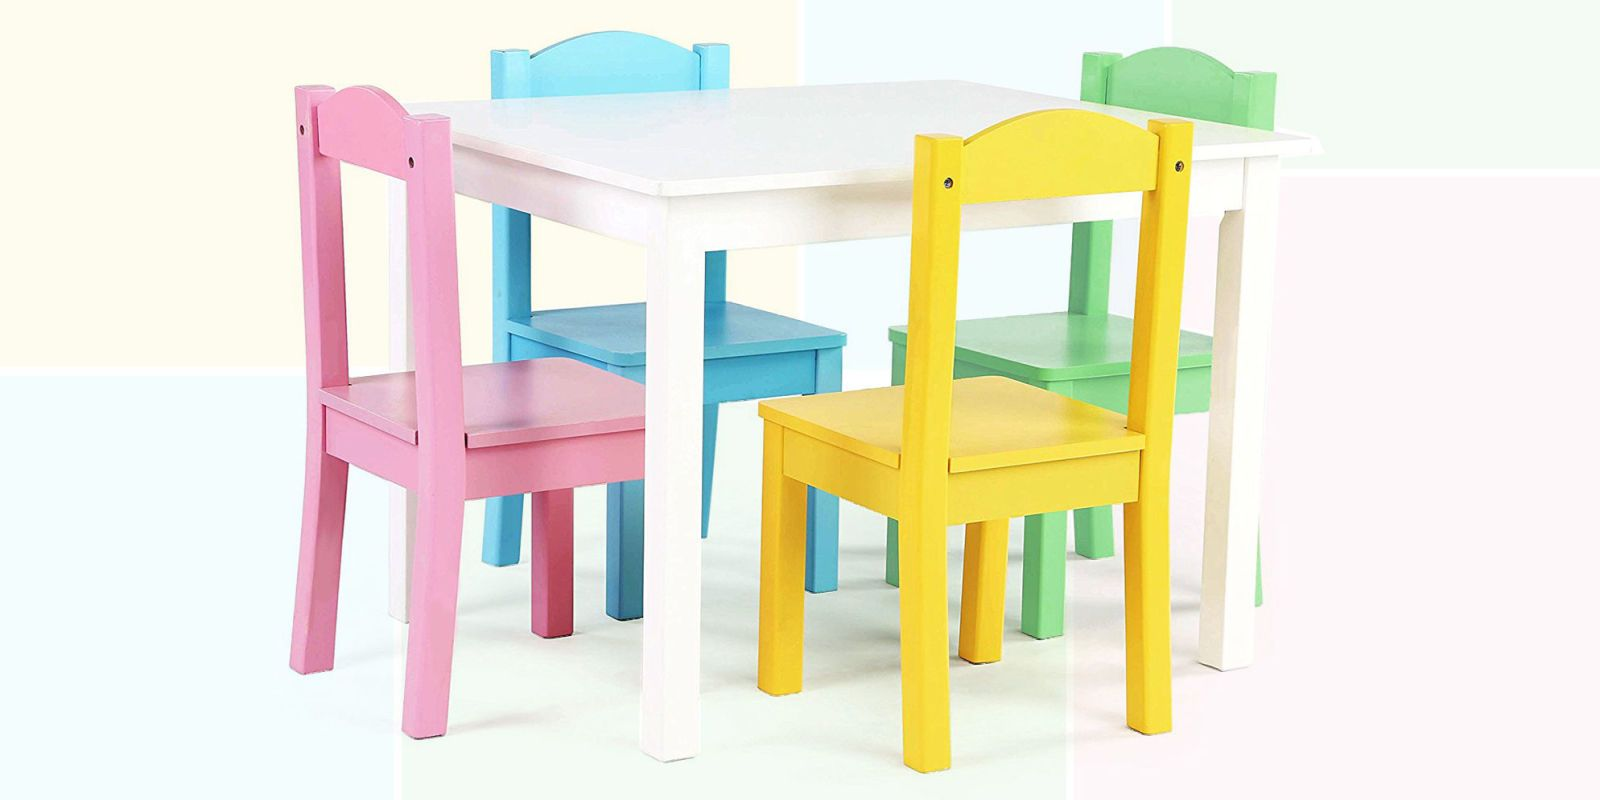 toddler table and chairs  sc 1 st  BestProducts.com & 17 Best Kids Tables and Chairs in 2018 - Childrens Table and Chair ...